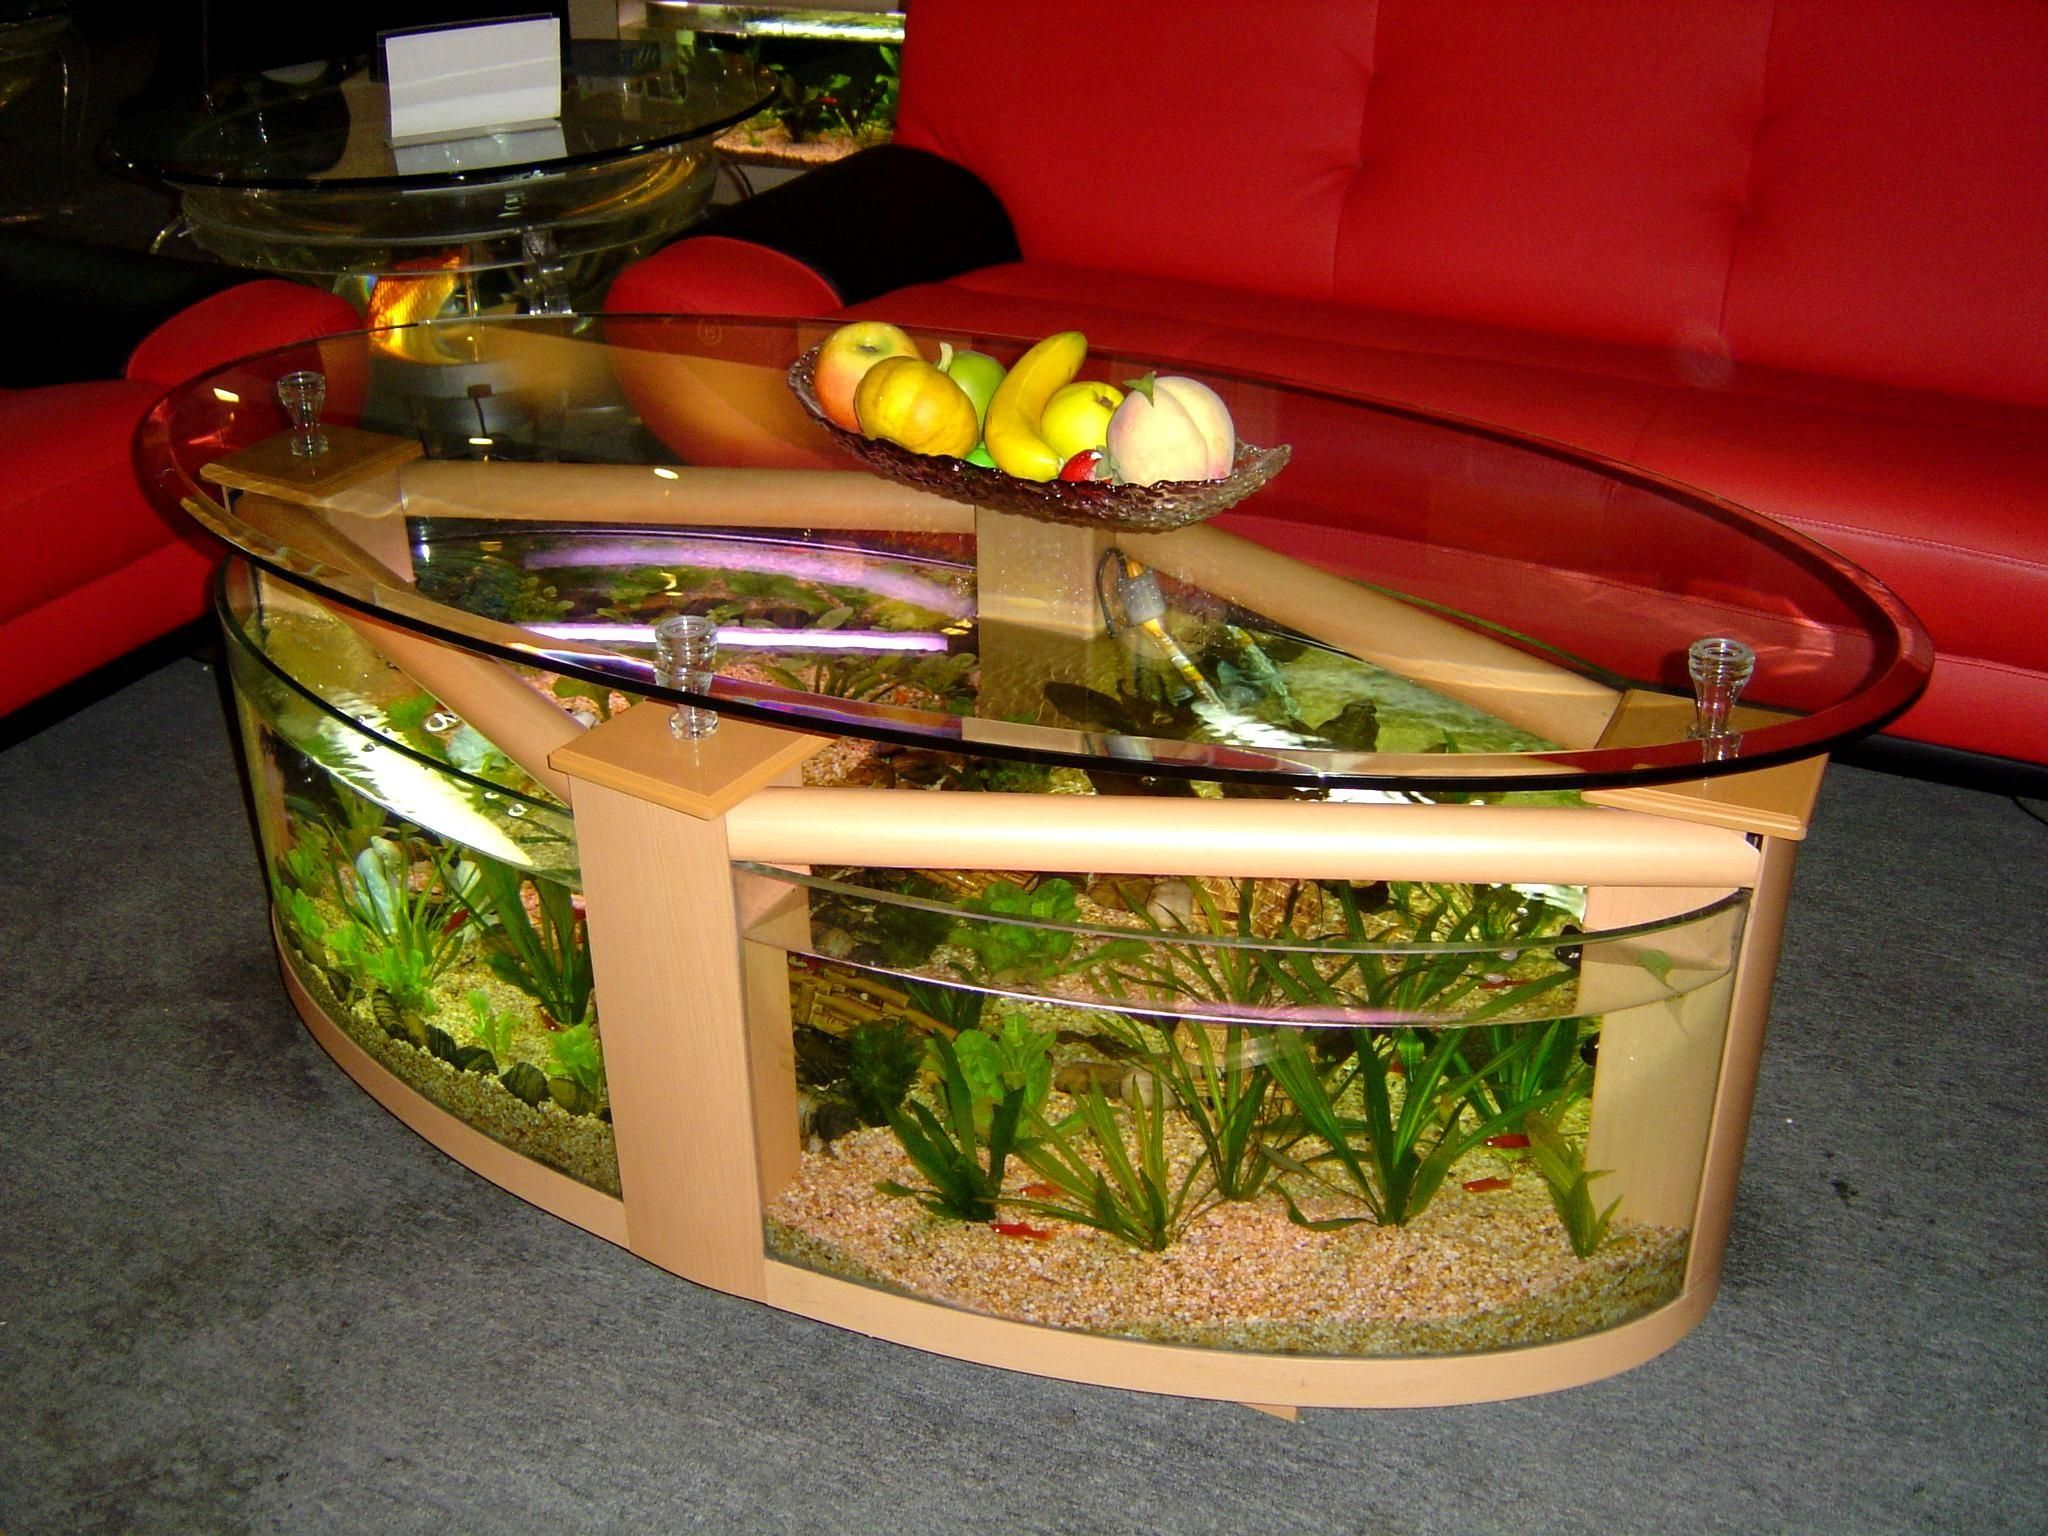 Fish tank living room table - Awesome Fish Tank Living Room Ideas For Oval Glass Table Then Awesome Eound Glass Table Beside